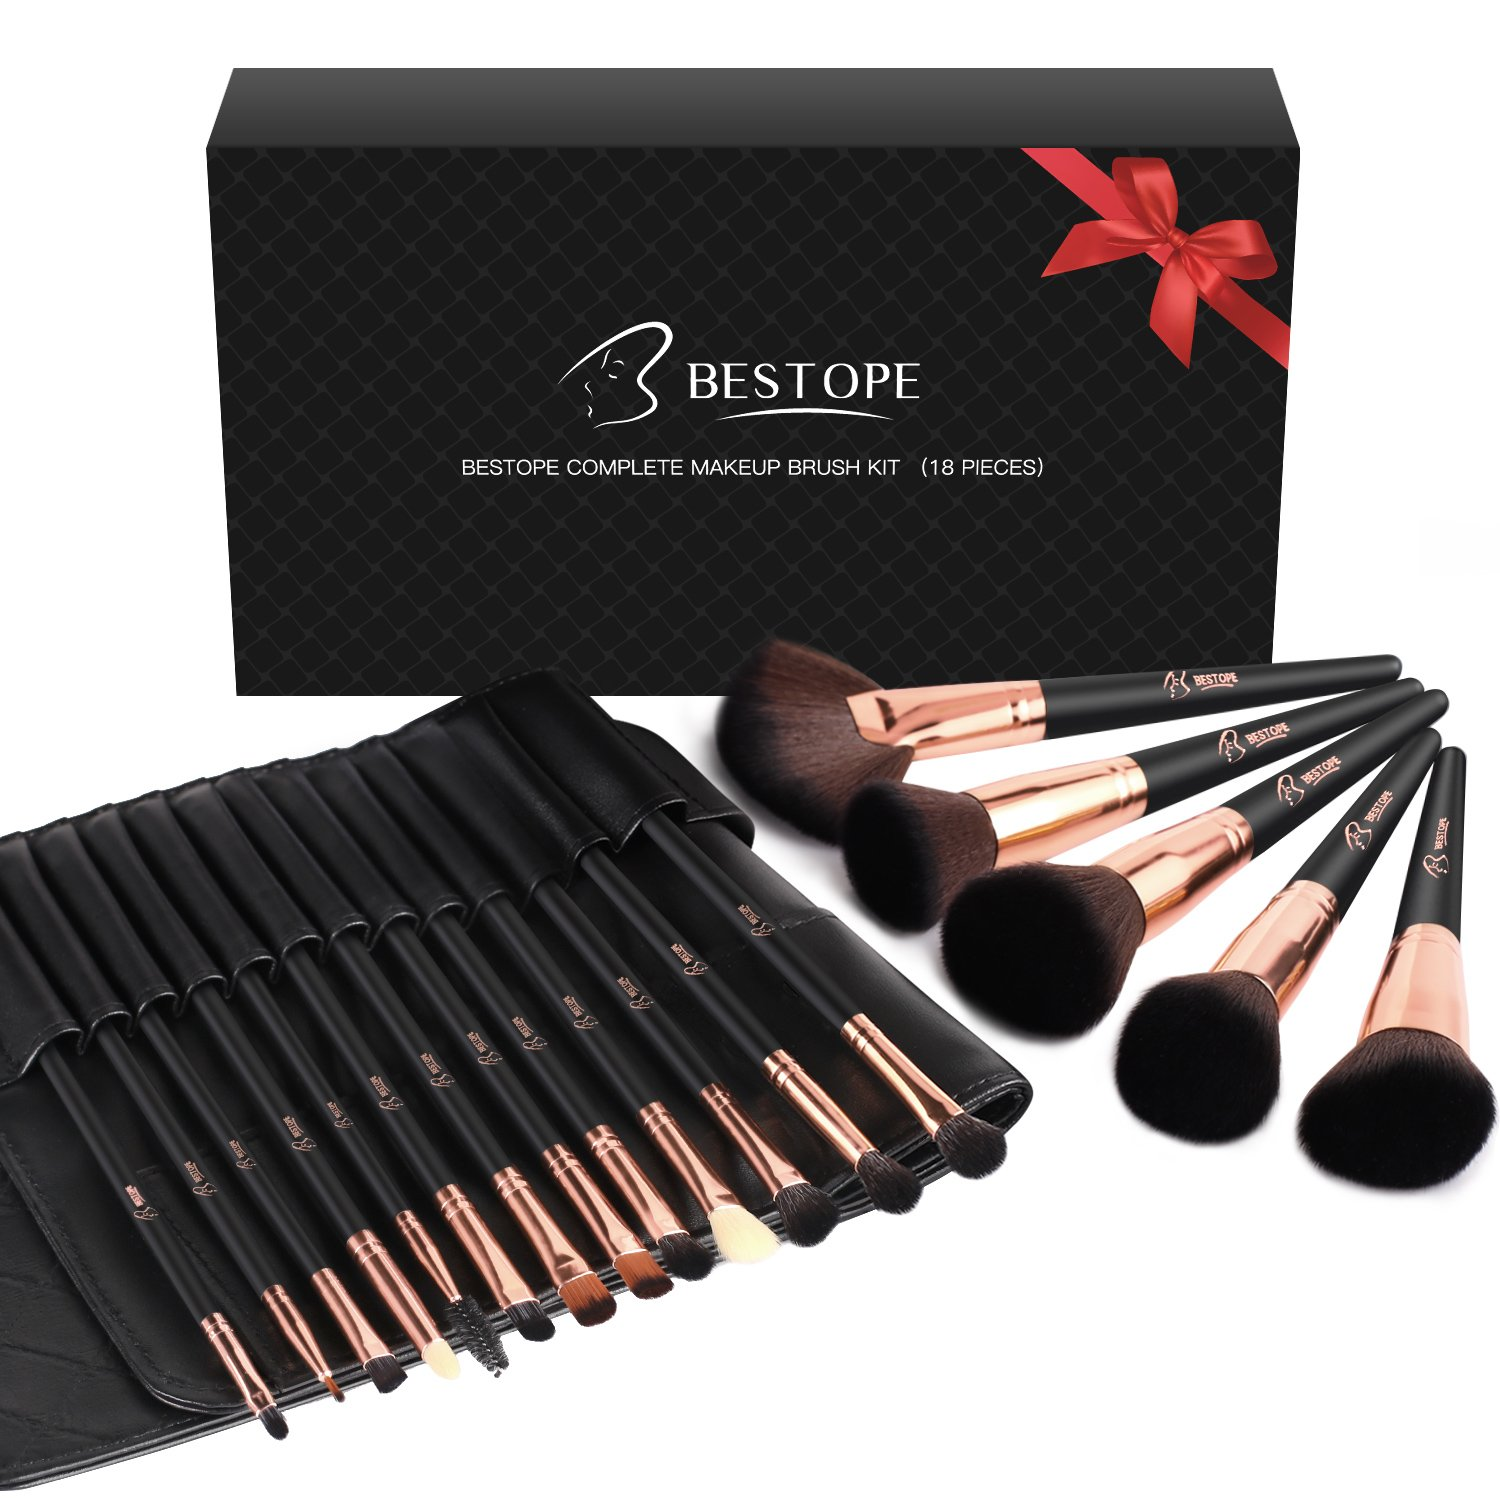 BESTOPE Makeup Brushes 18 PCs Makeup Brush Set Premium Synthetic Foundation Powder Kabuki Brushes Concealers Eye Shadows Make Up Brushes Kit Ltd.